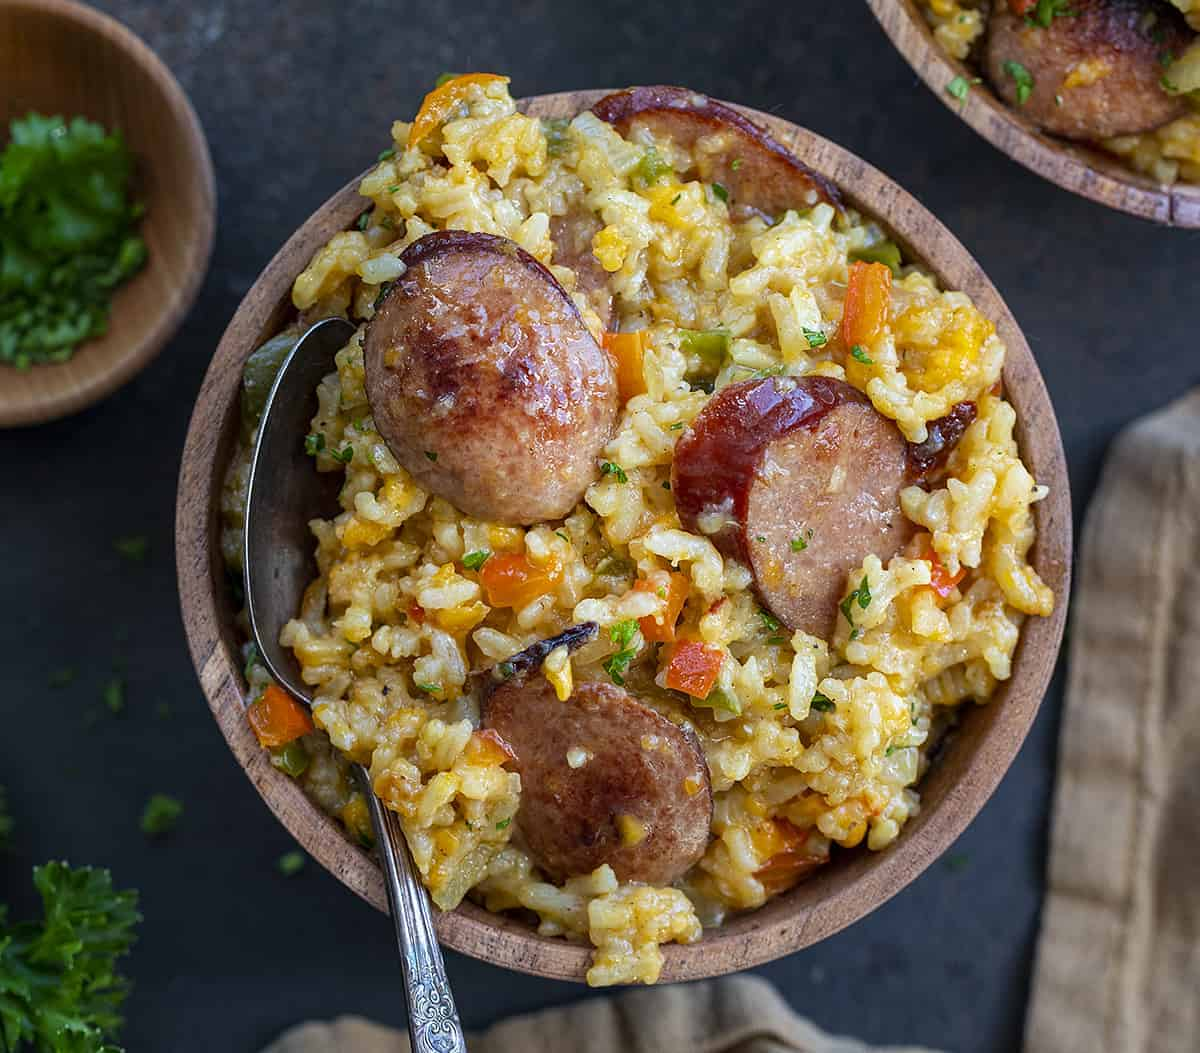 Bowl of Cheesy Sausage and Rice